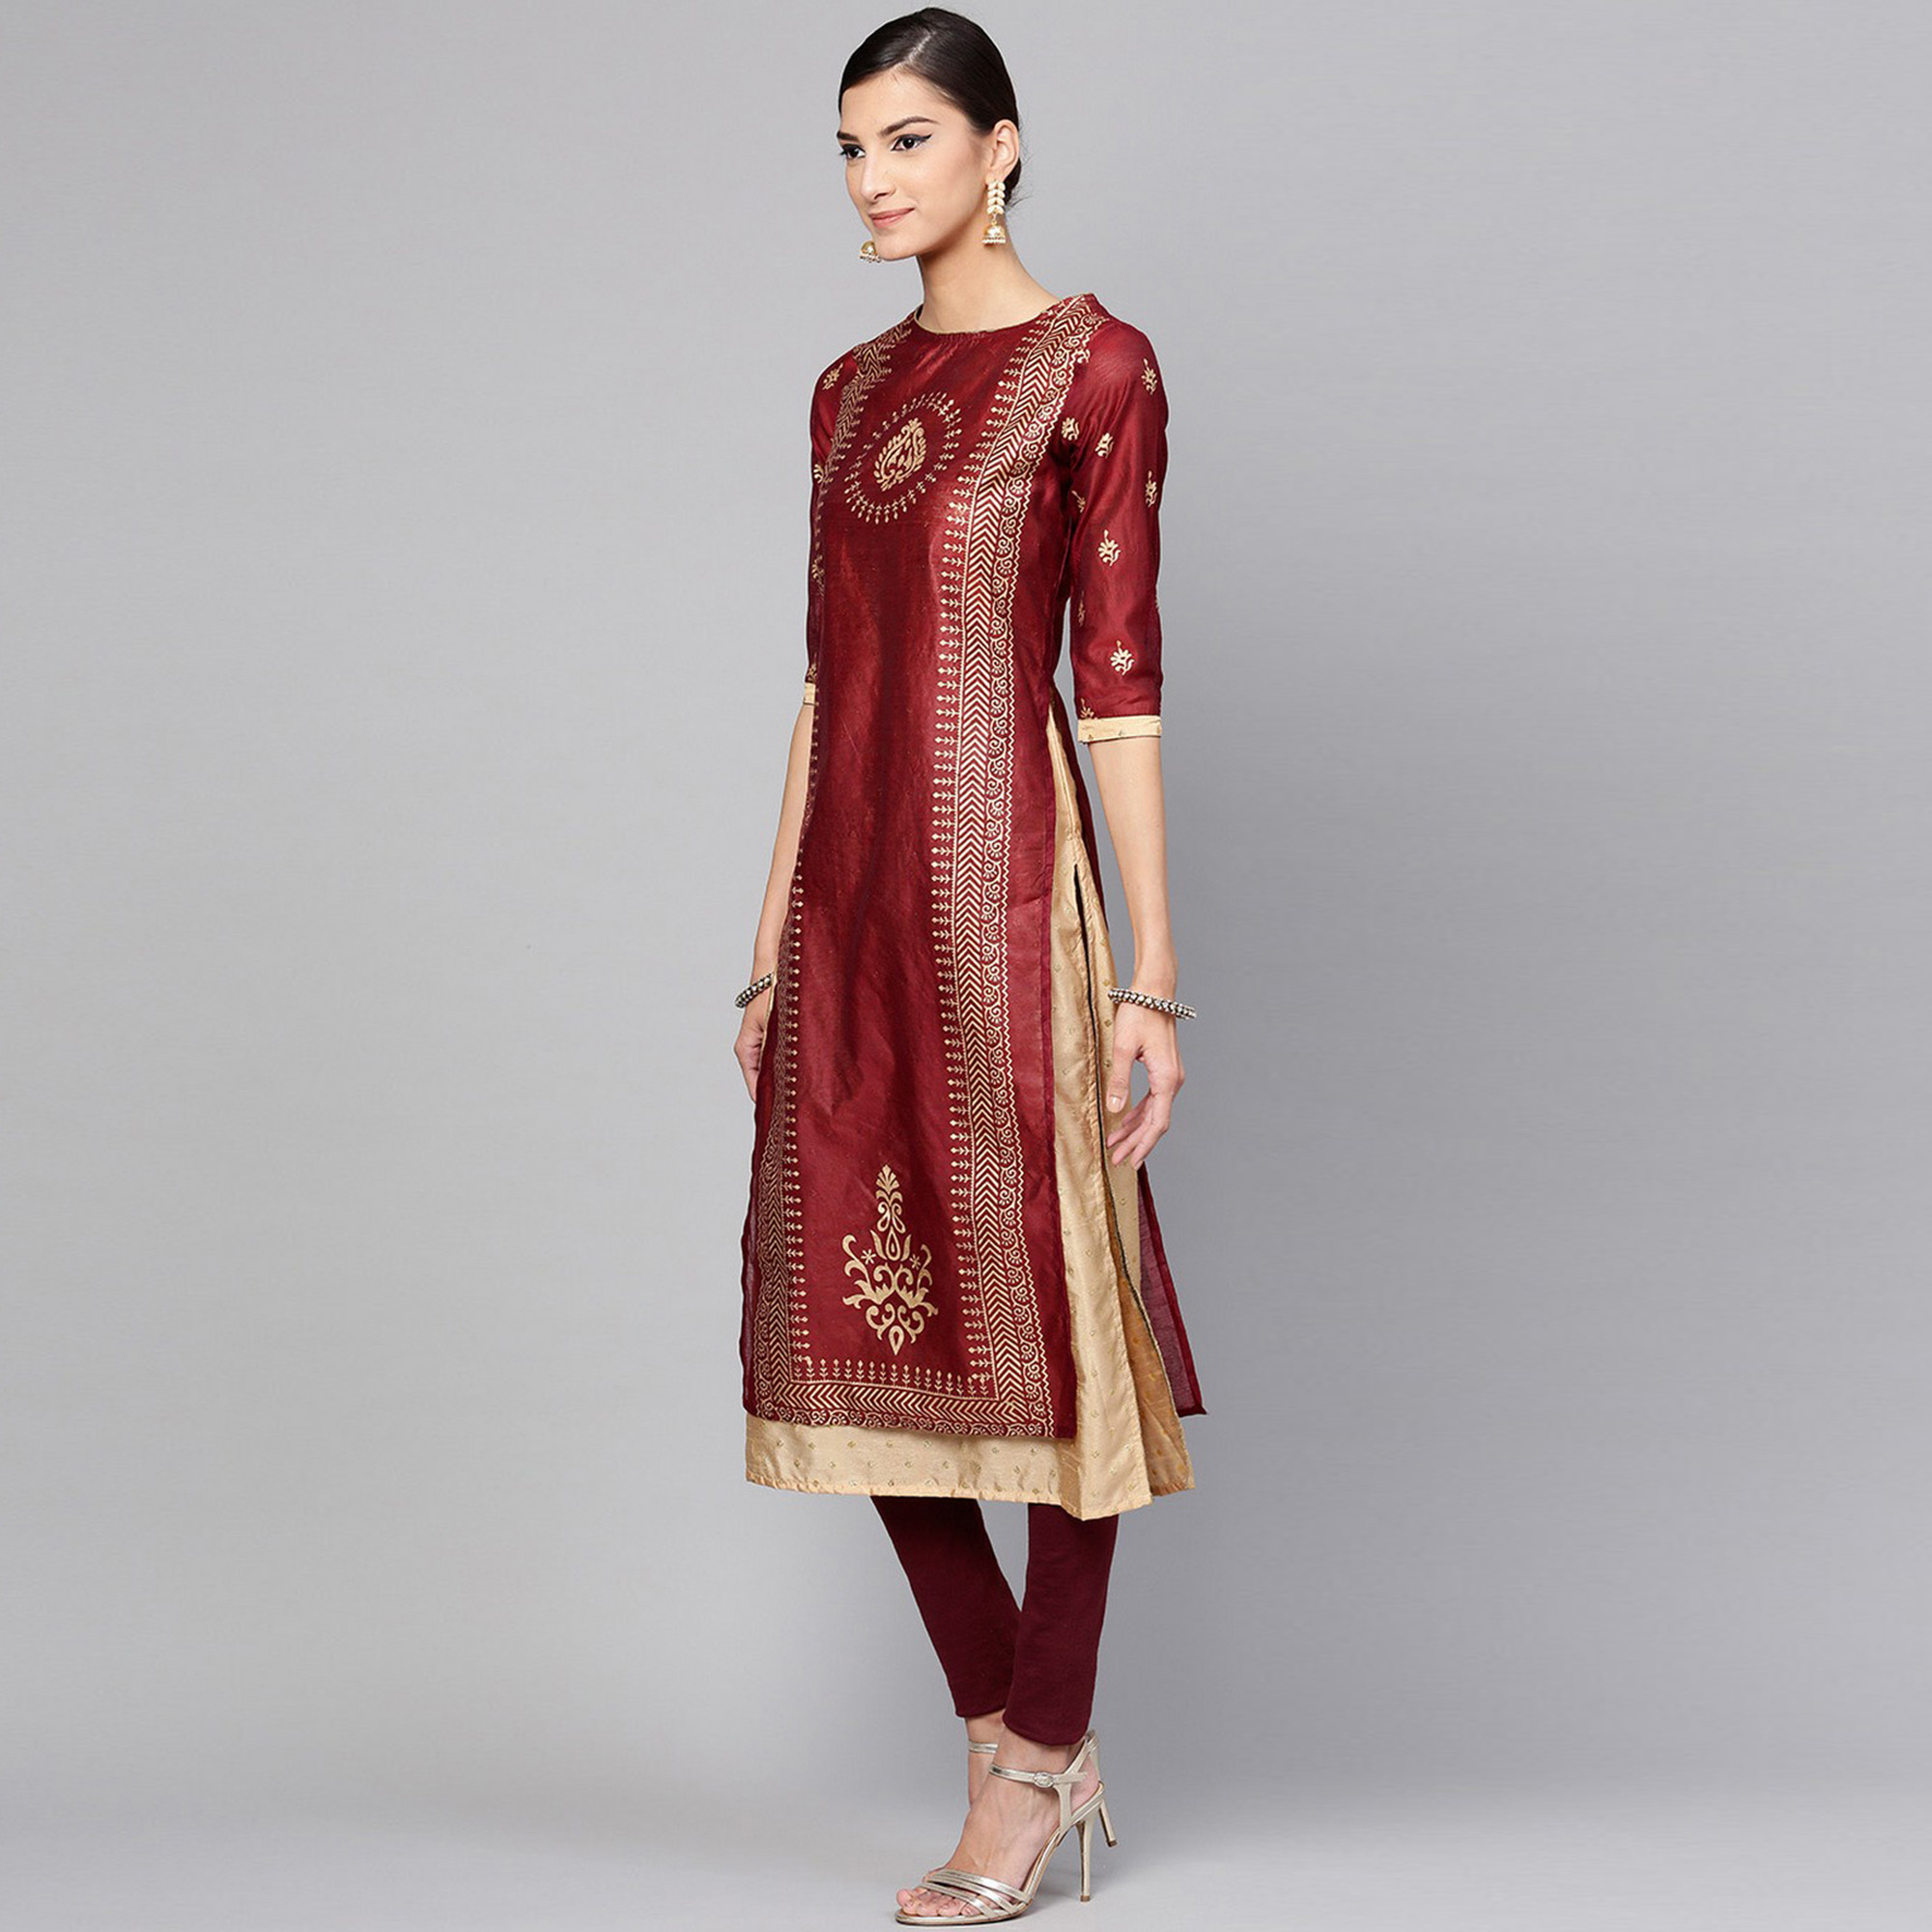 Delightful Maroon Colored Casual Wear Printed Chanderi Silk Kurti